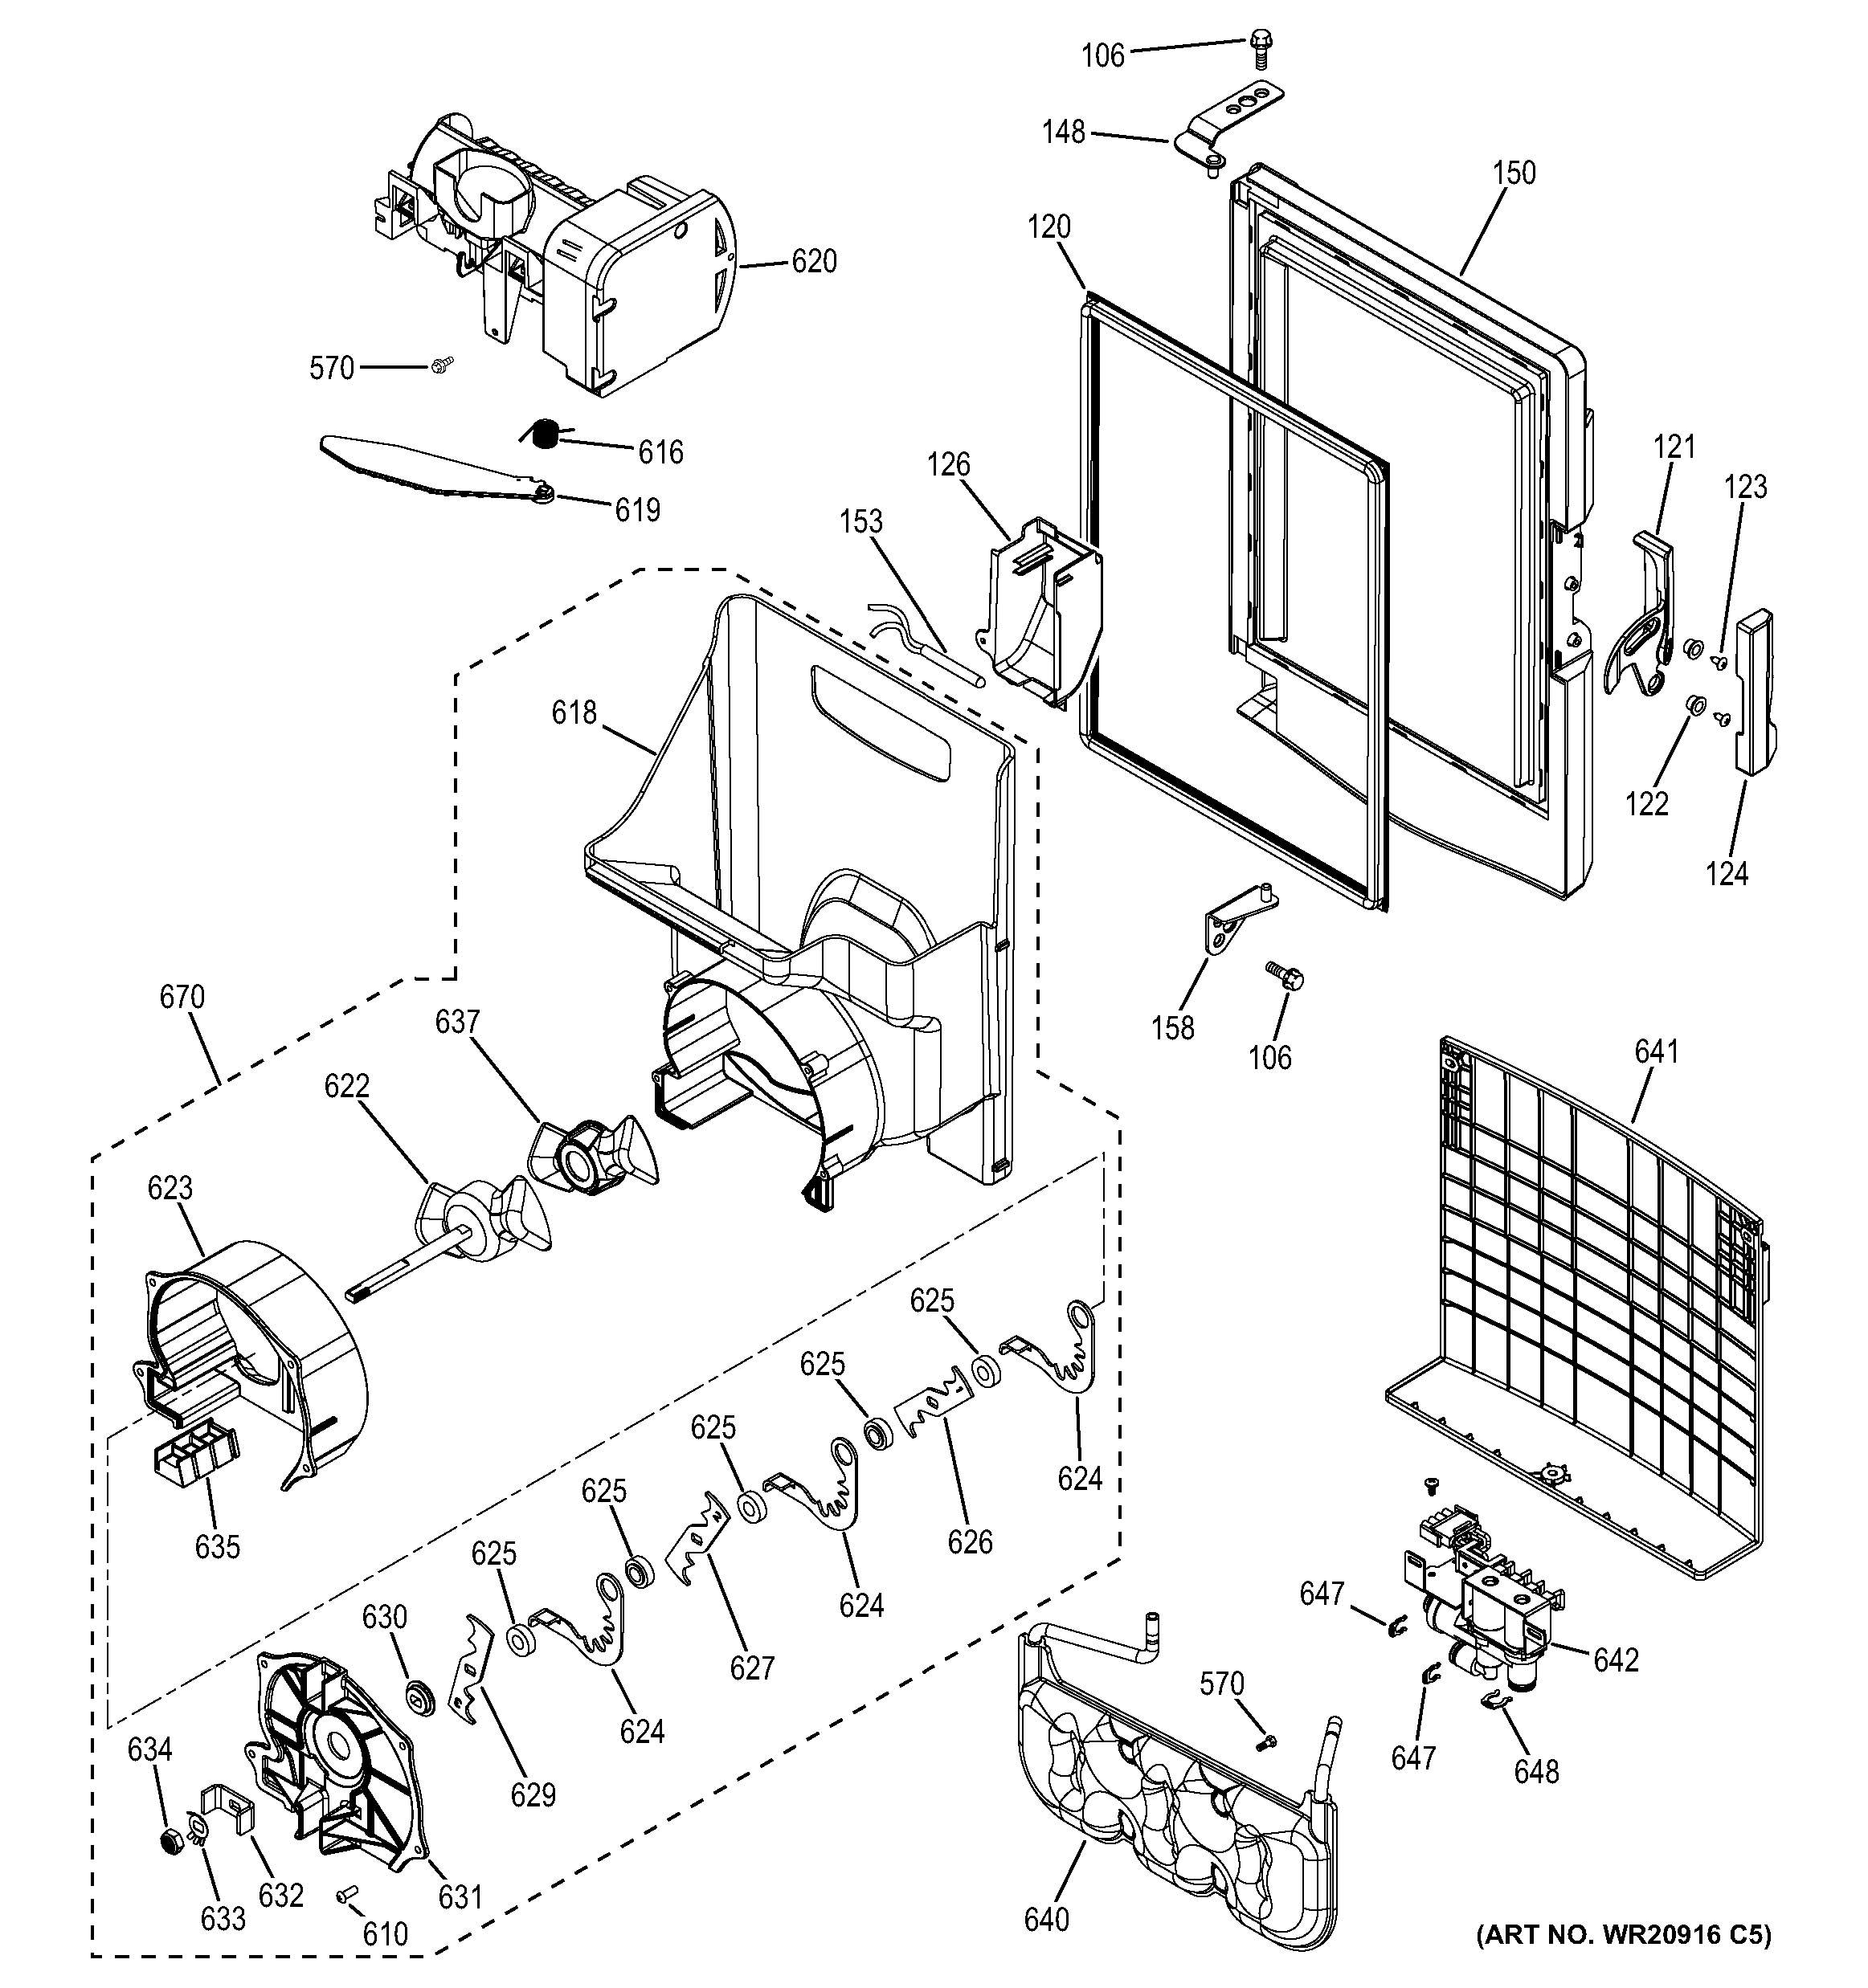 general electric refrigerator parts diagram 1988 winnebago chieftain wiring assembly view for ice maker and dispenser gfe26gmhbes